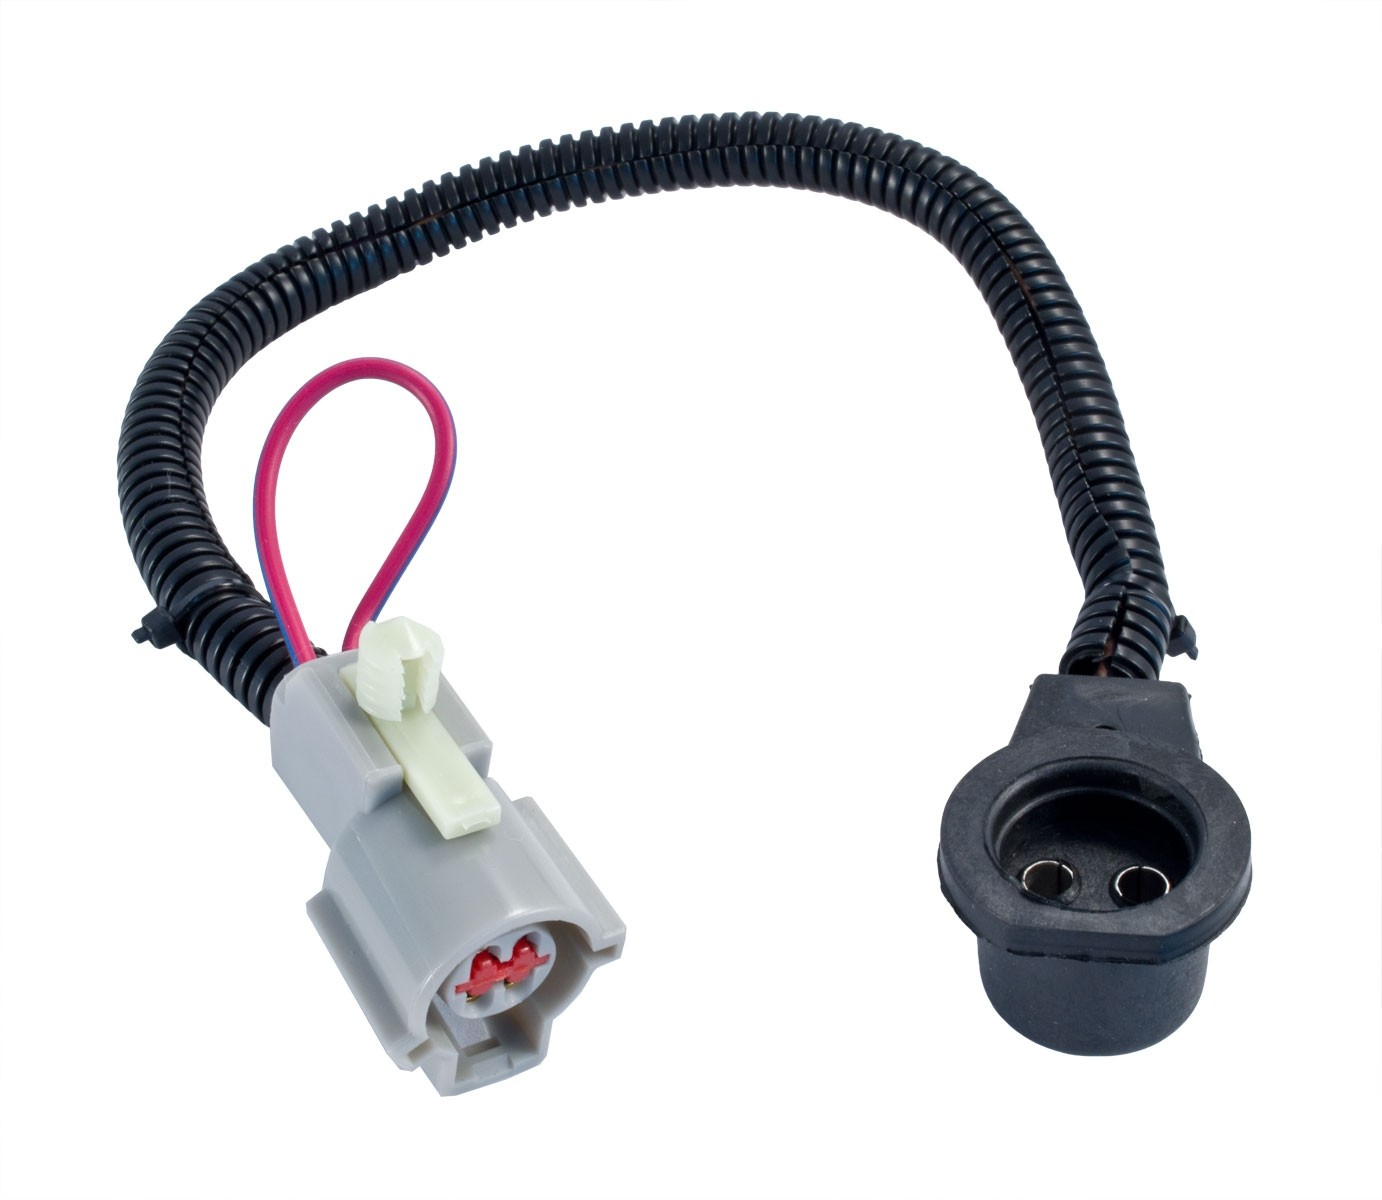 hight resolution of 1987 1993 ford mustang manual trans back up reverse light switch wiring harness taillights lighting 1979 1993 mustang